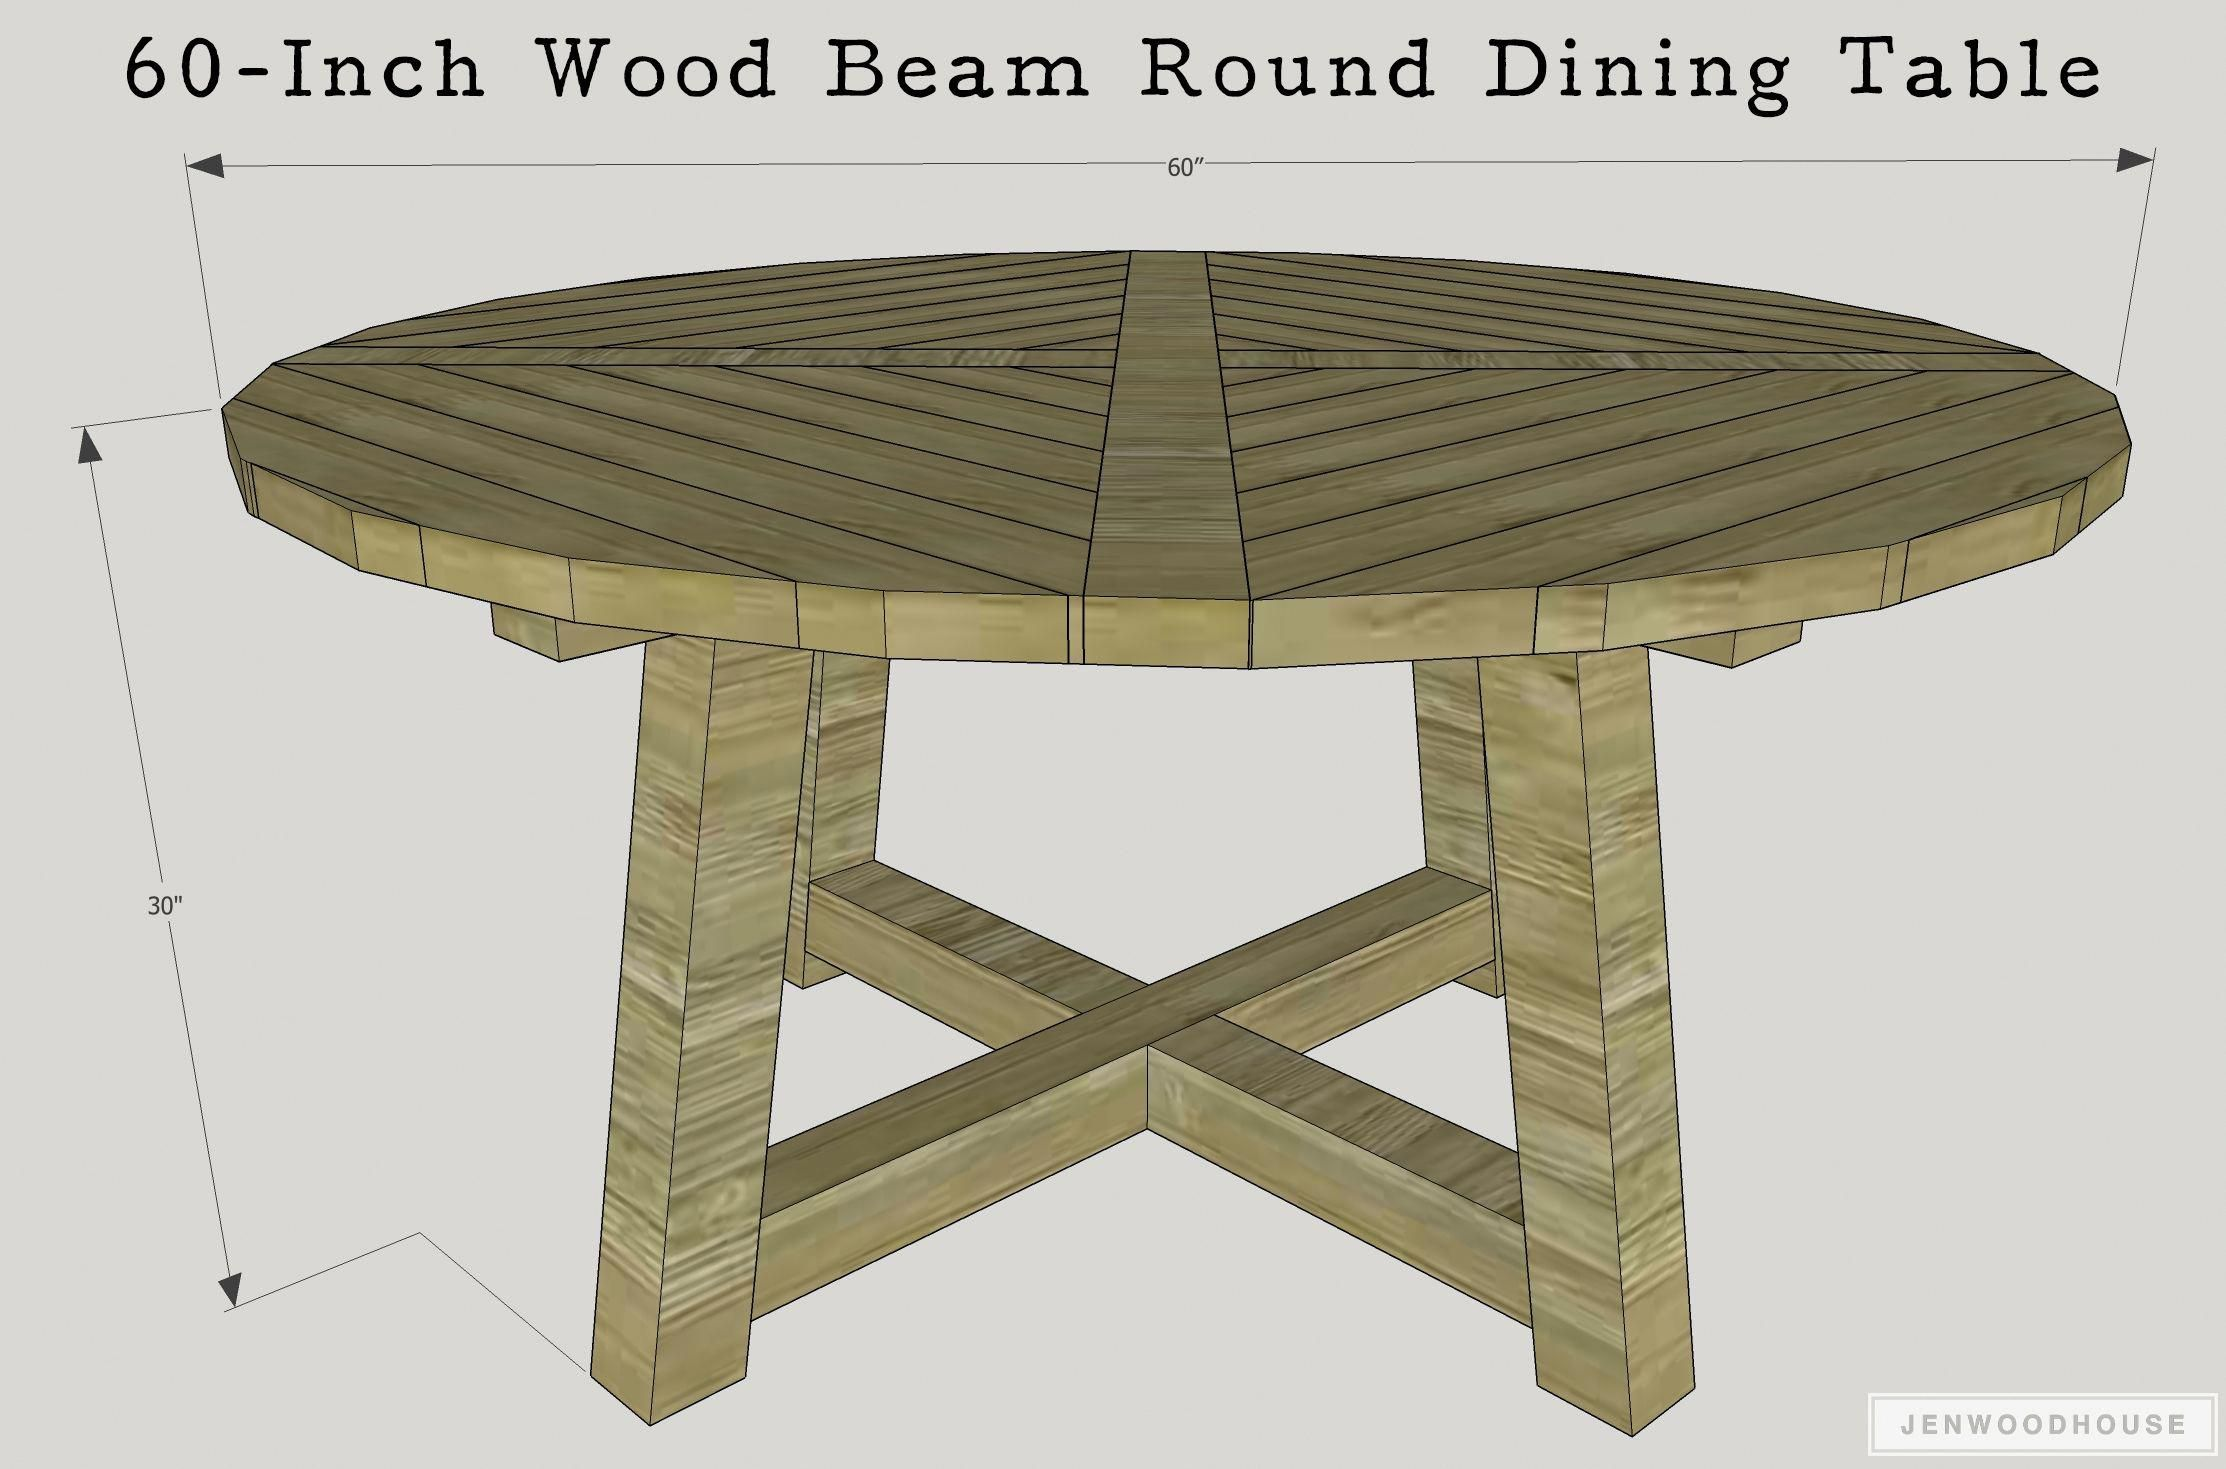 Learn How To Build A Diy Wood Beam Round Dining Table 48 Inch And